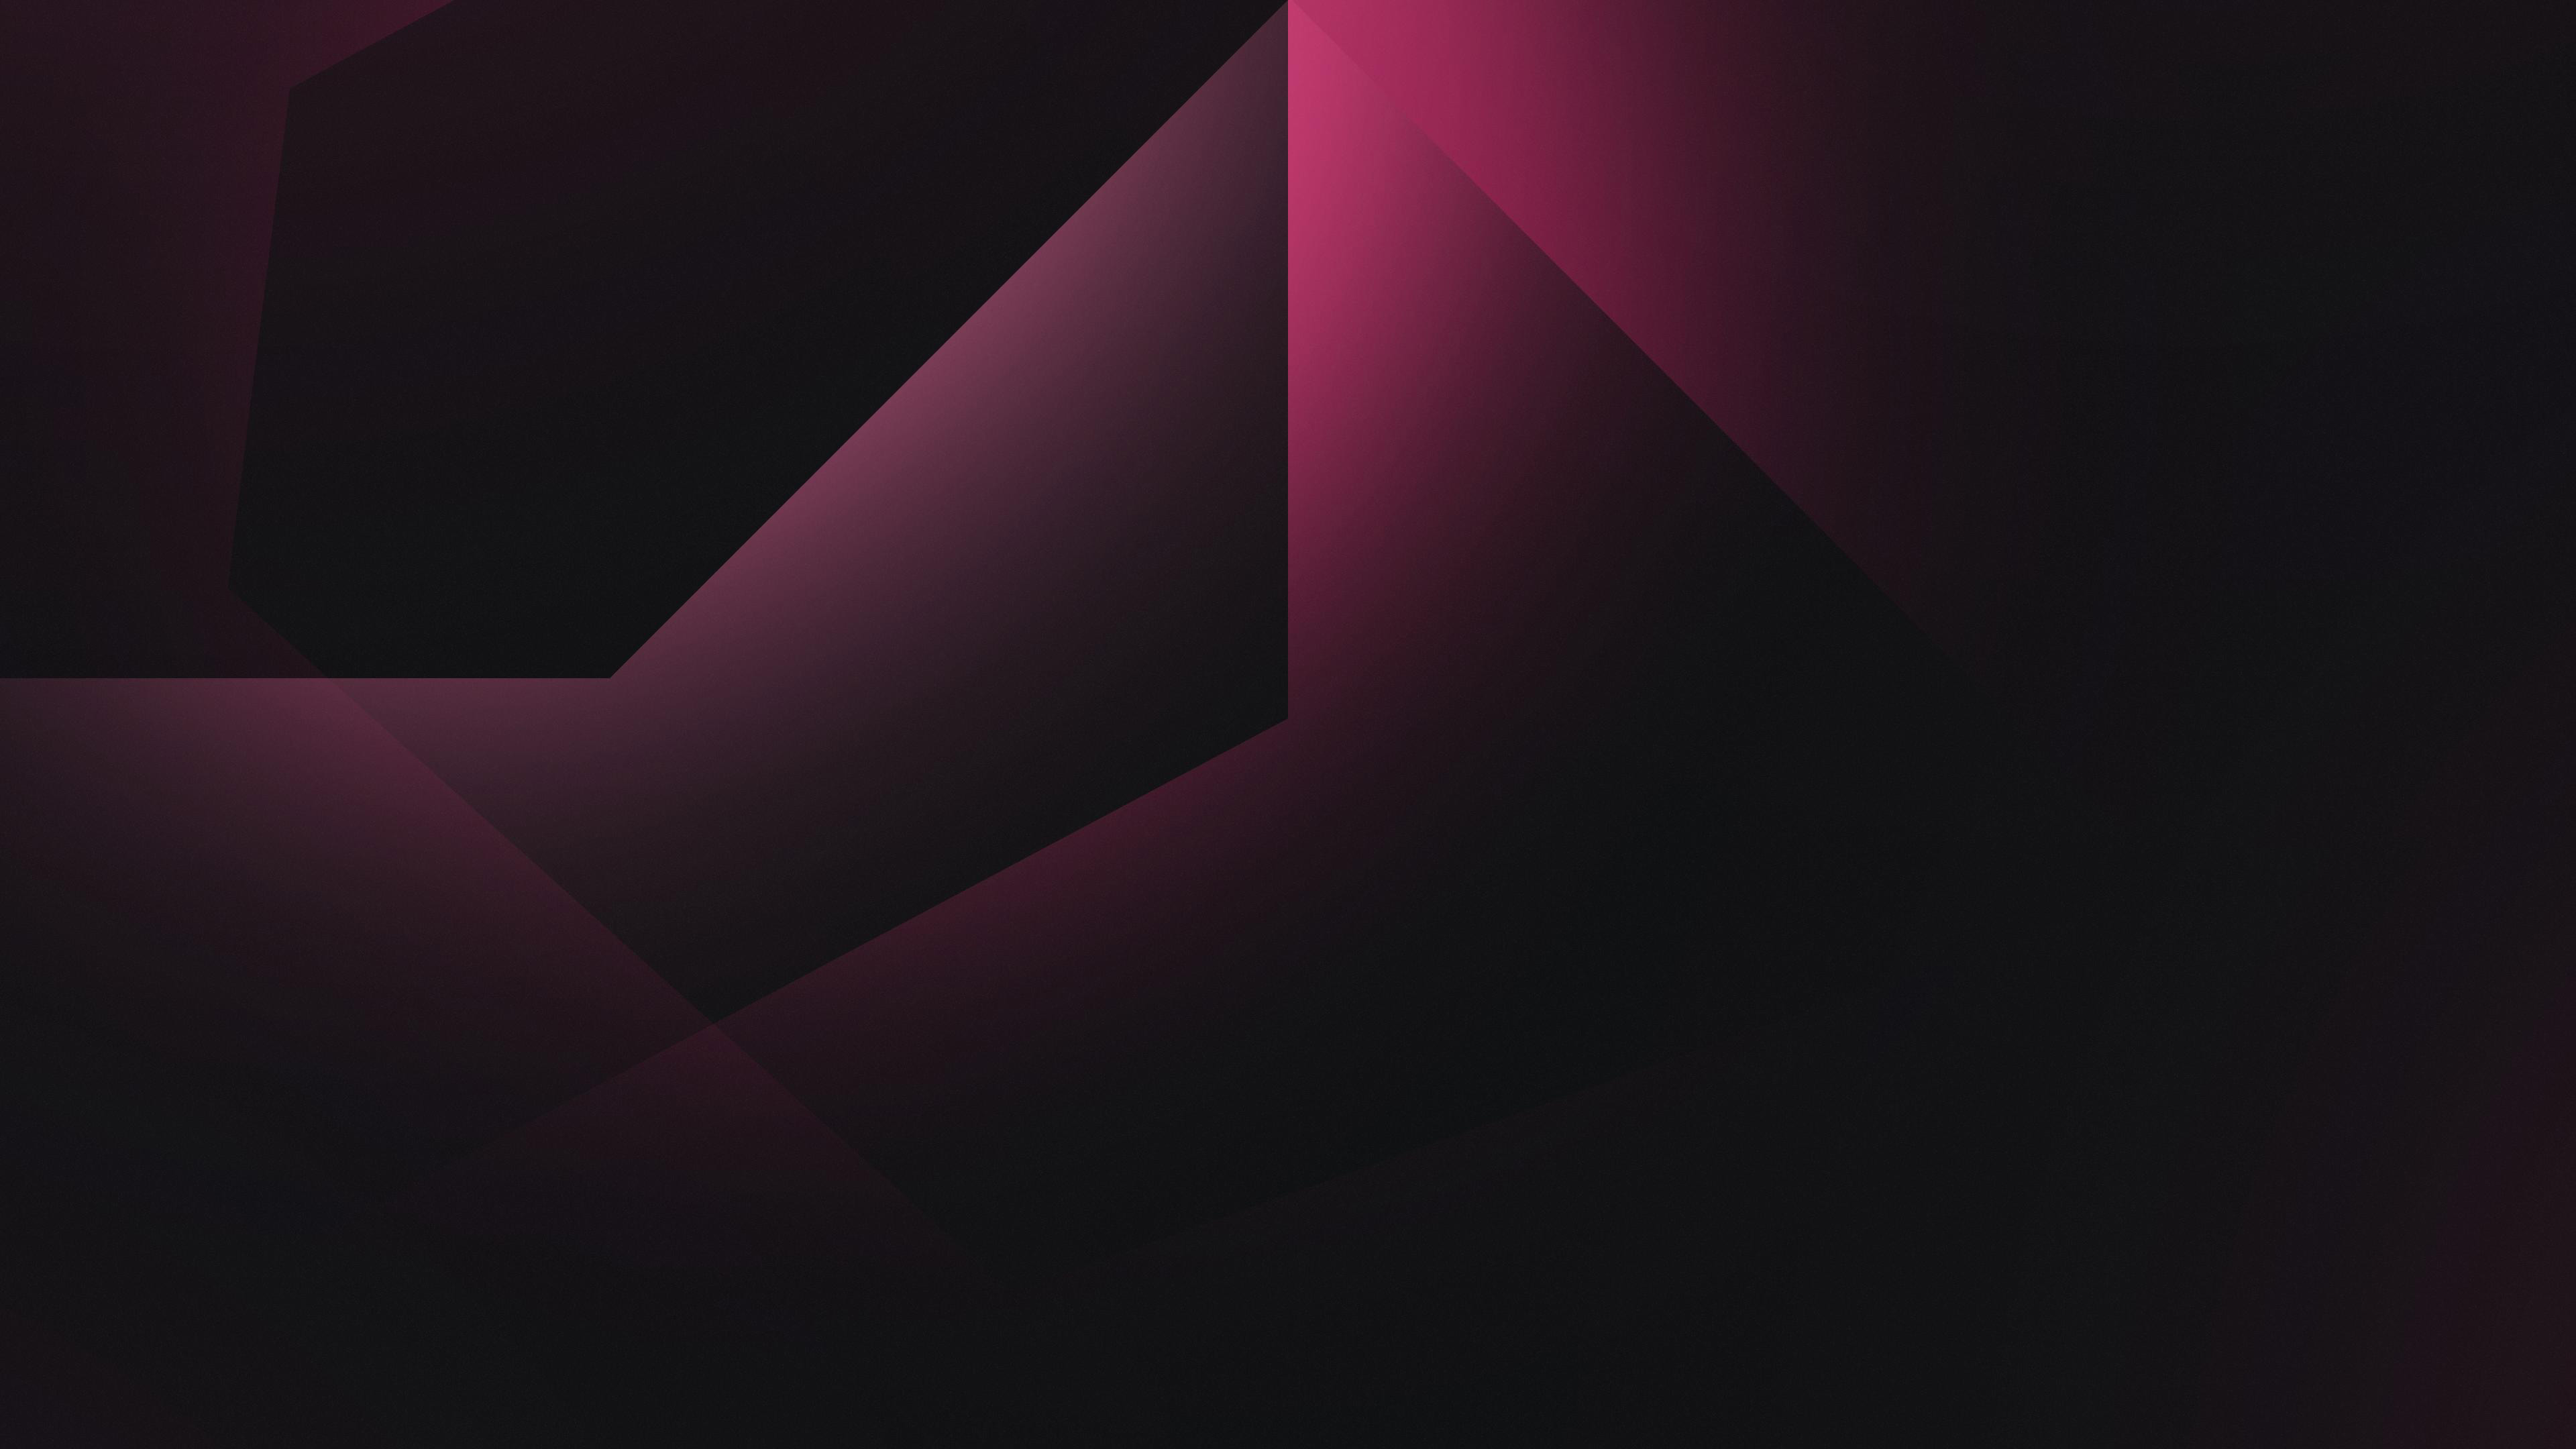 Abstract Dark Red 4k Hd Abstract 4k Wallpapers Images